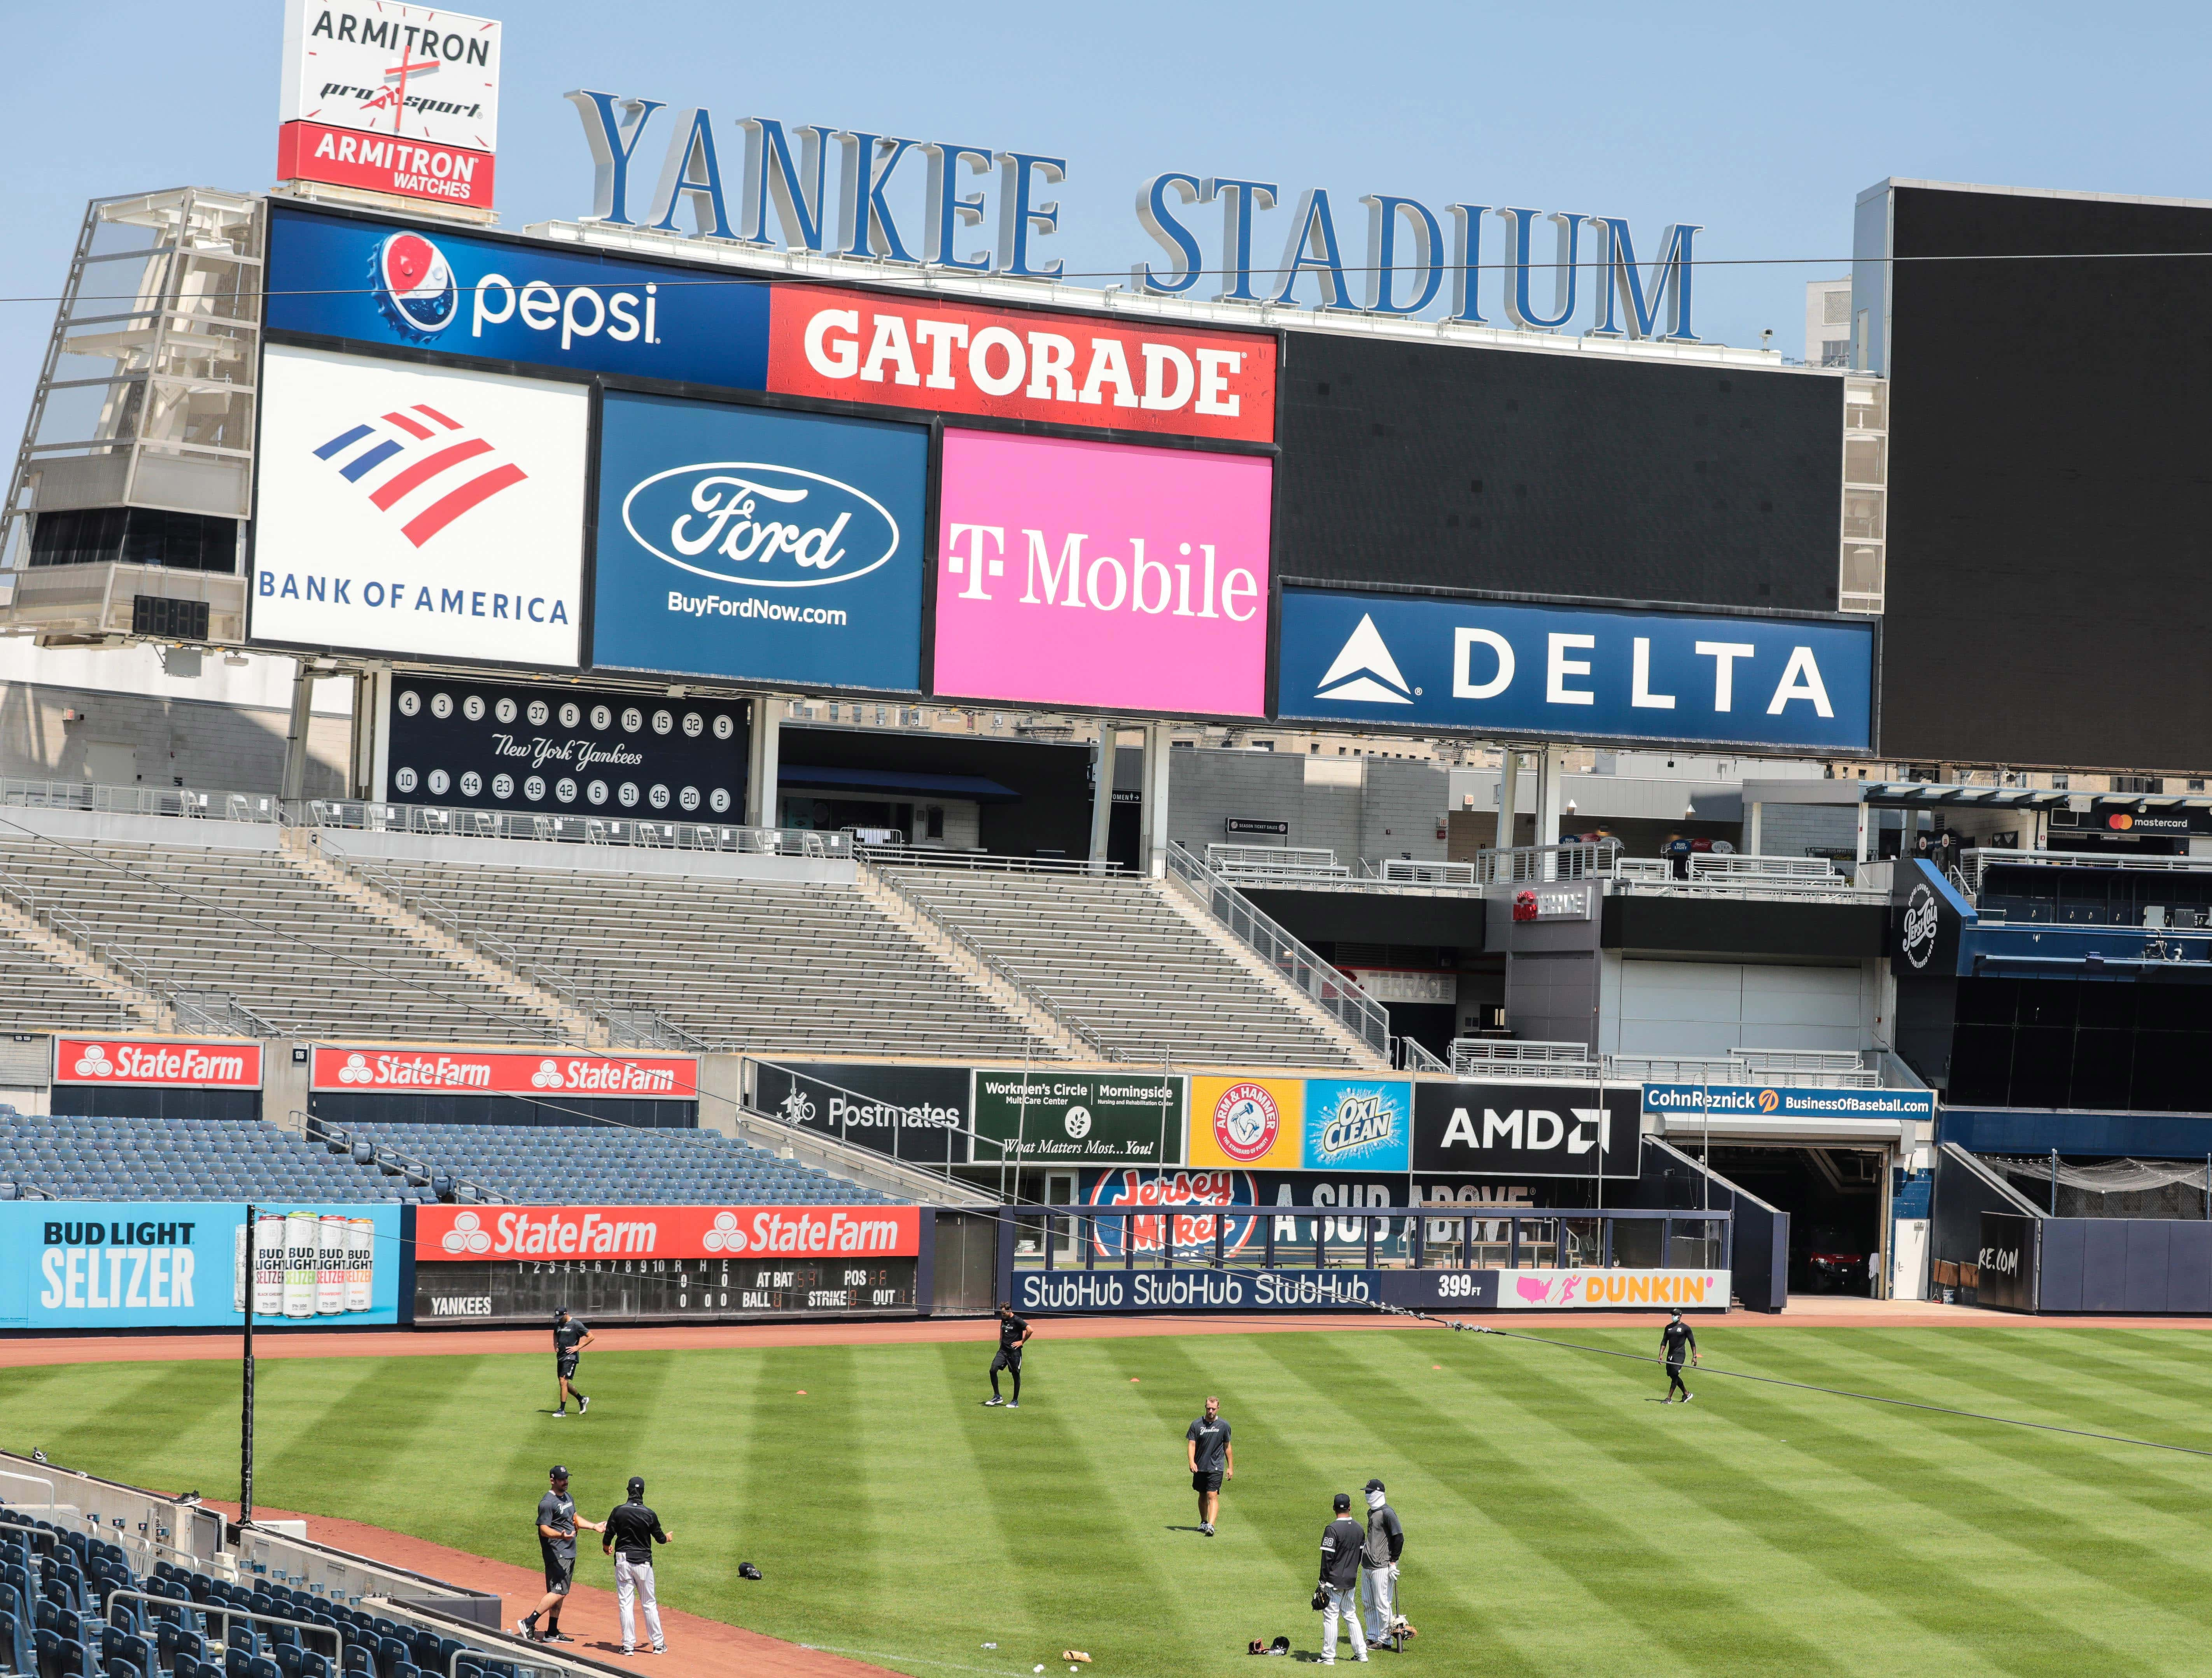 Jul 6, 2020; Bronx, New York, United States; New York Yankees players workout in left field at Yankee Stadium. Mandatory Credit: Vincent Carchietta-USA TODAY Sports